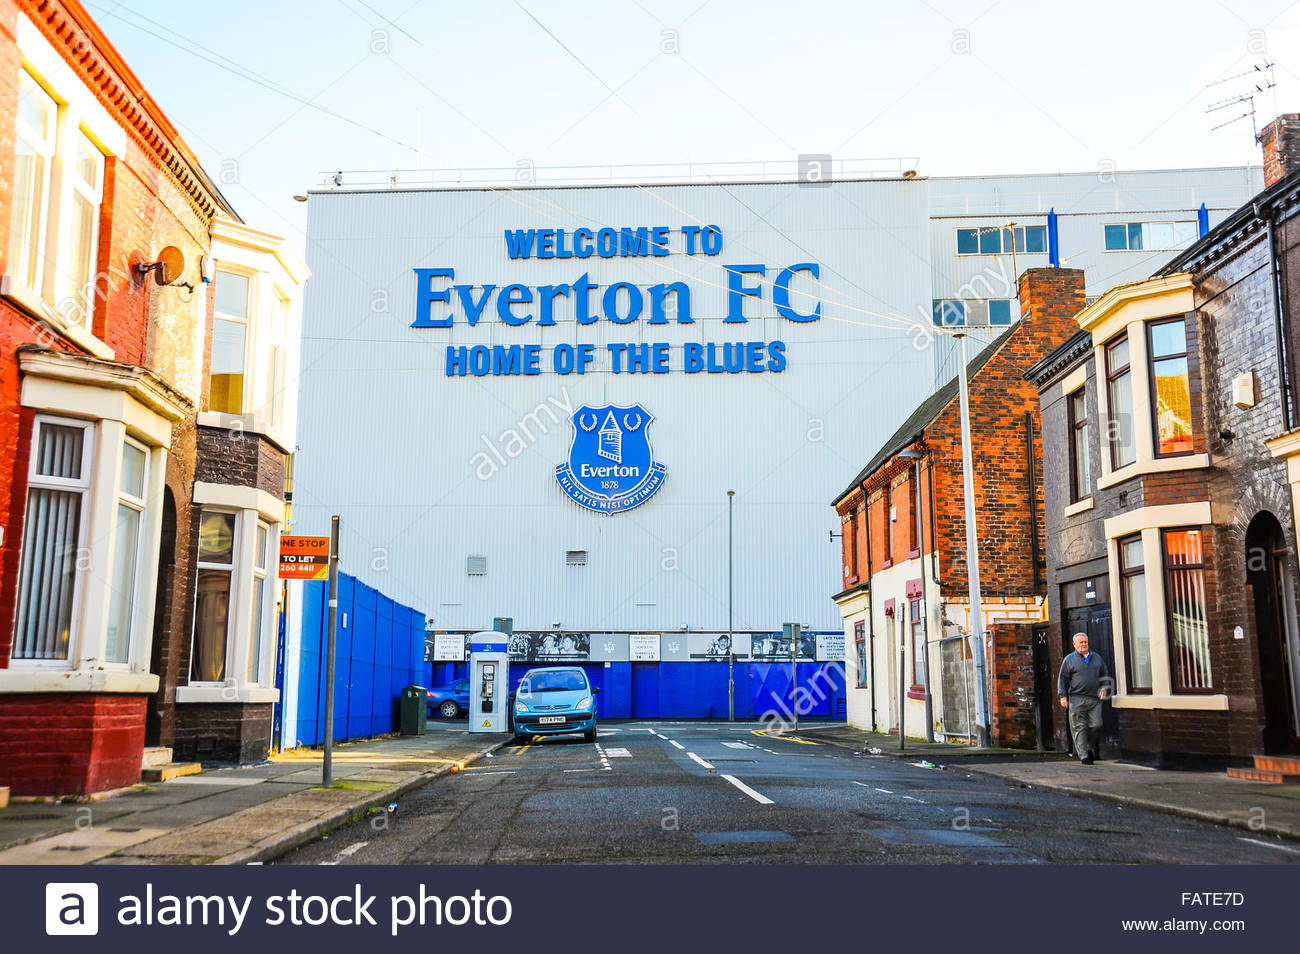 View of Everton Football Club from Neston Street, Walton, Liverpool, England UK Stock Photo